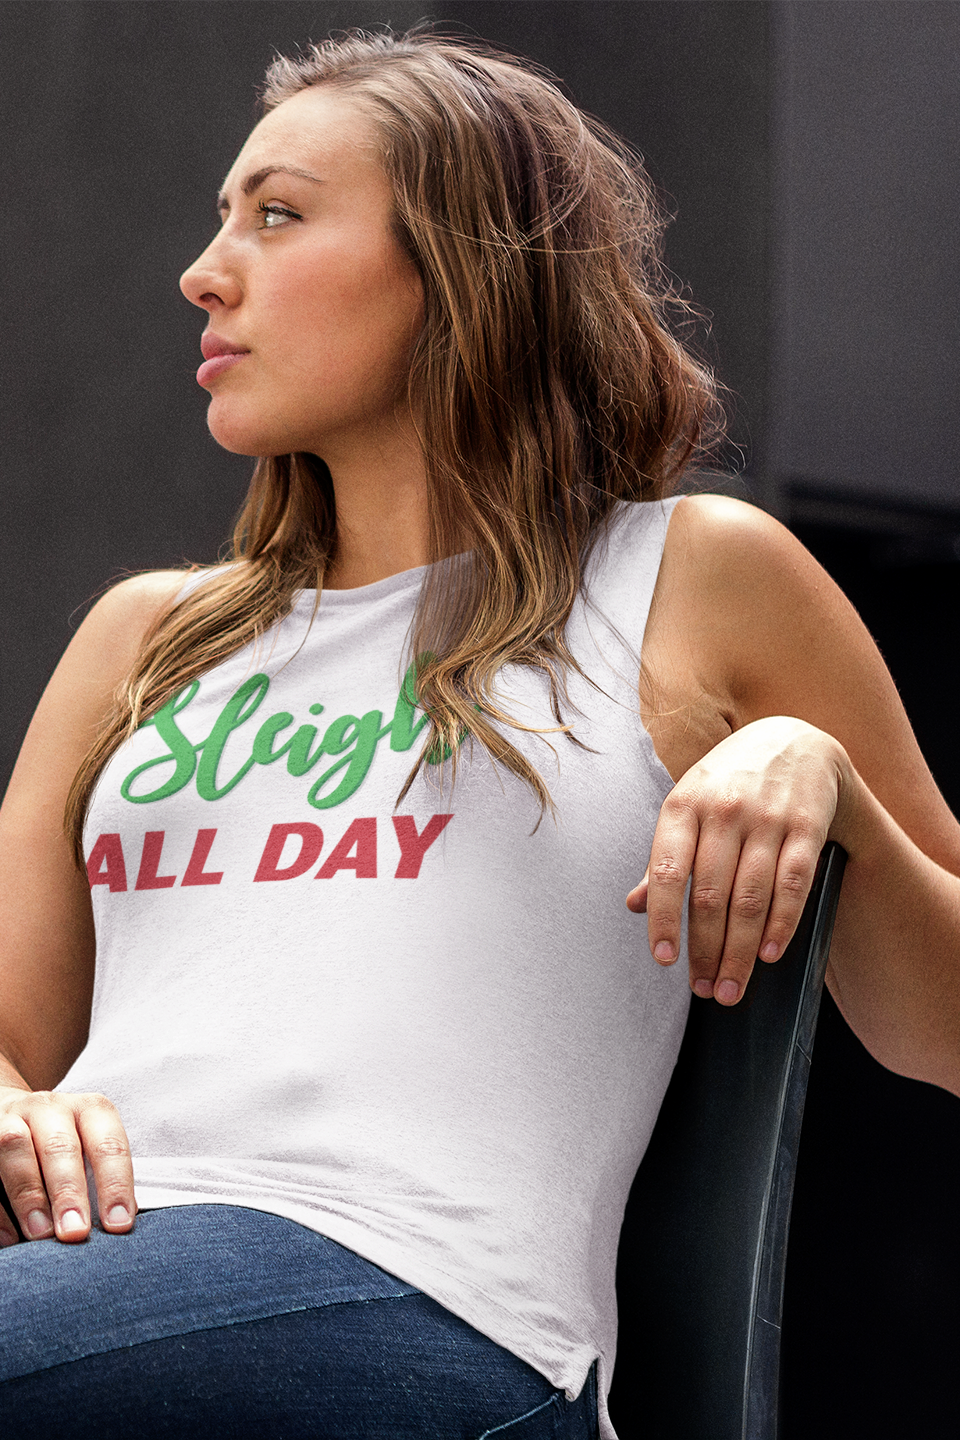 Sleigh All Day Unisex Tank Top